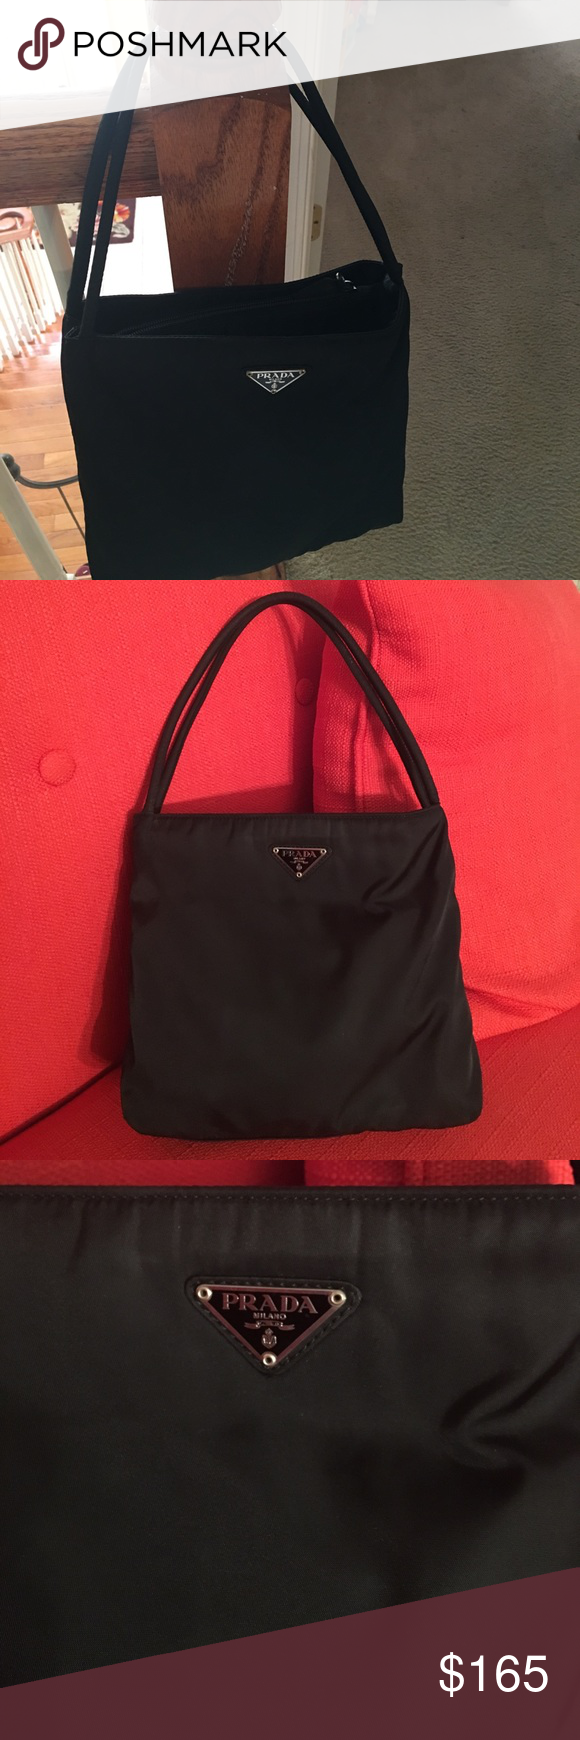 21f77018e7 ... australia beautiful black authentic small prada bag good used condition  clean inside and out no smells